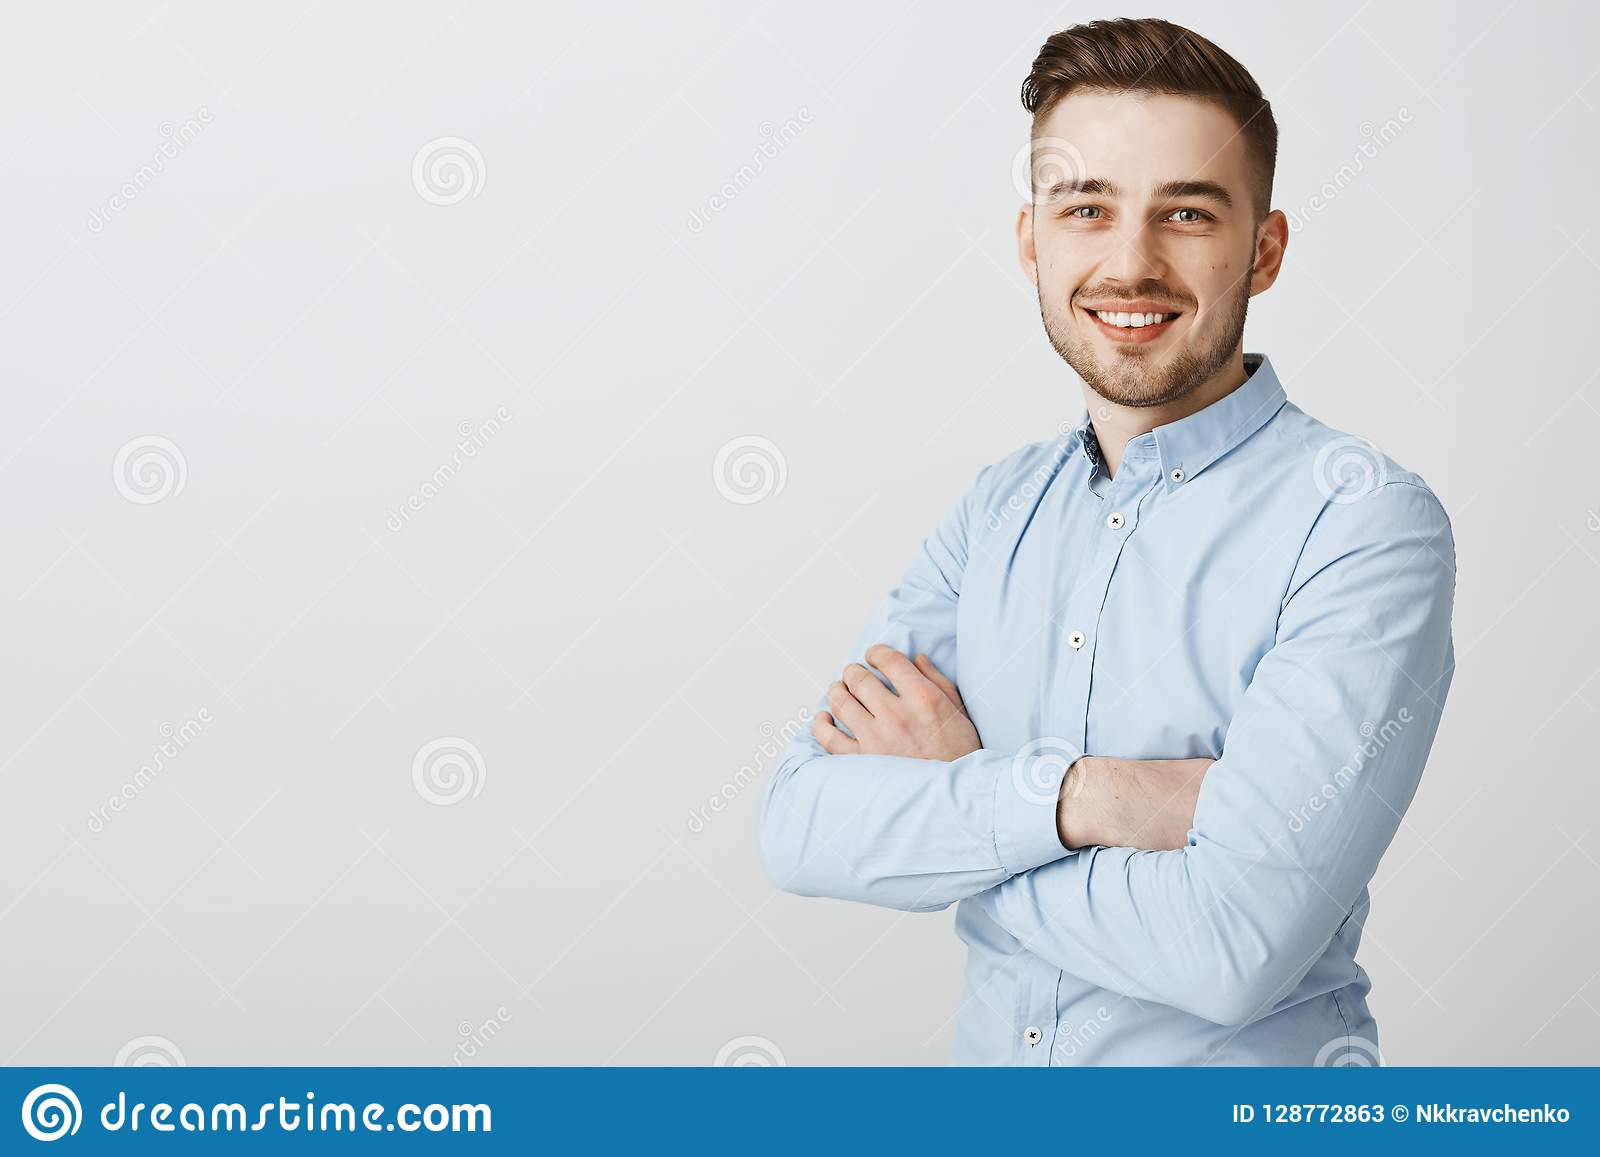 21b0c12edb6 Ambitious smart and creative handsome young male with bristle and stylish  hairstyle in blue collar shirt